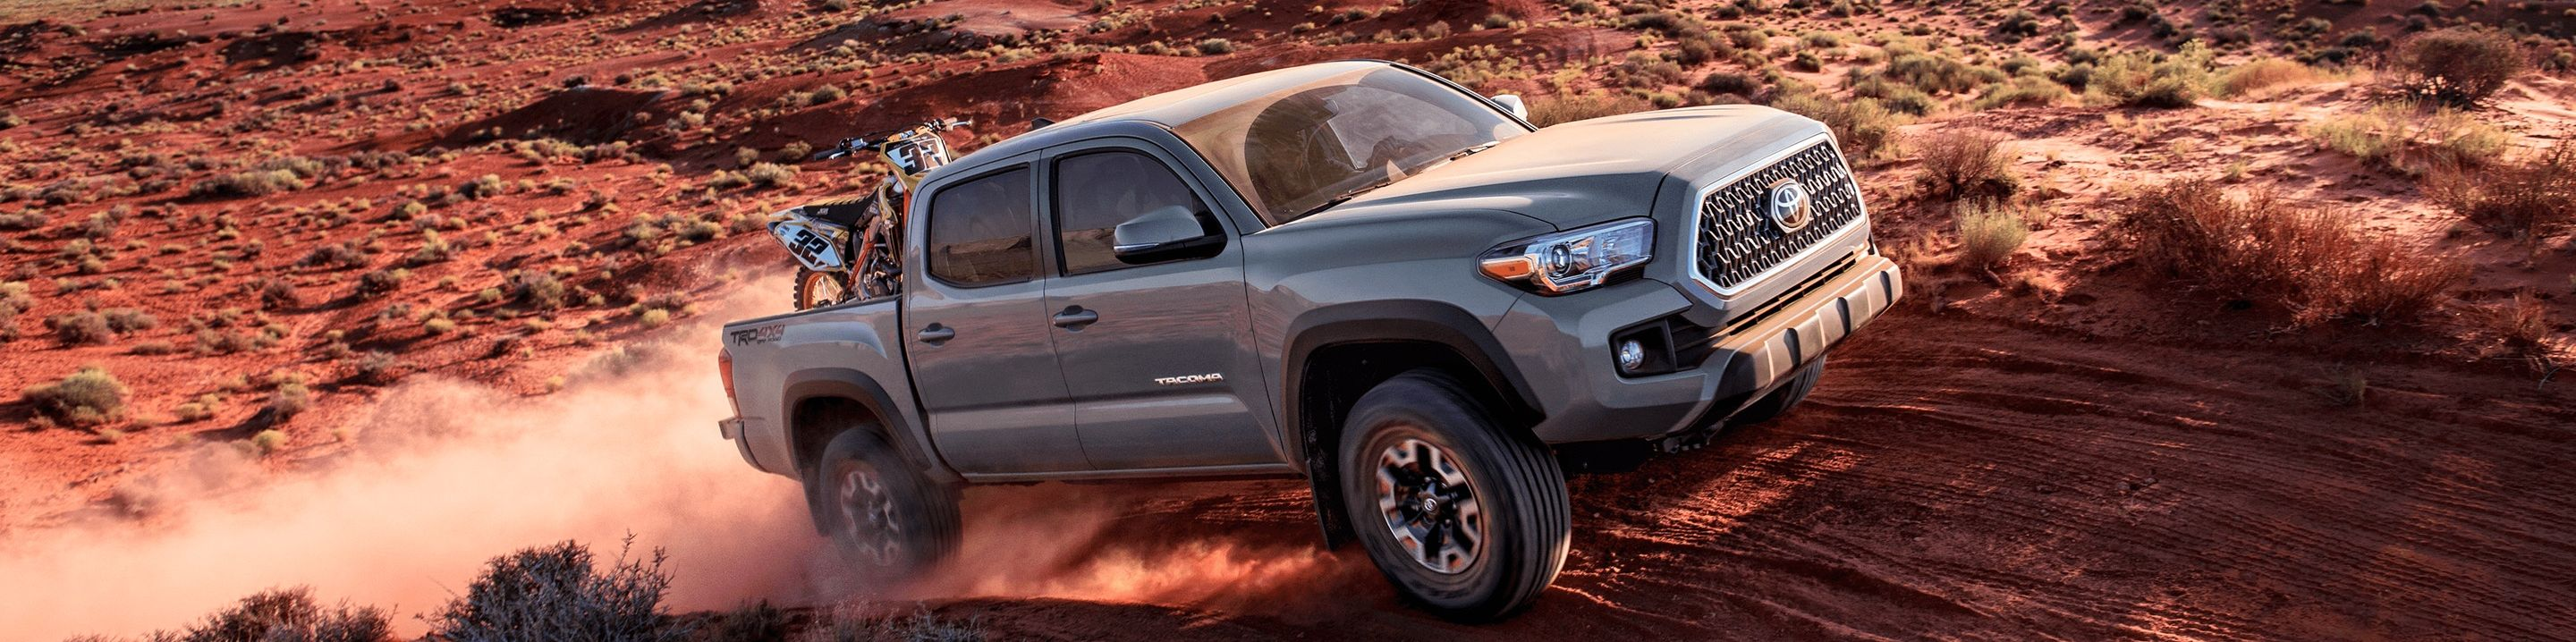 2019 Toyota Tacoma for Sale near Columbia, MO